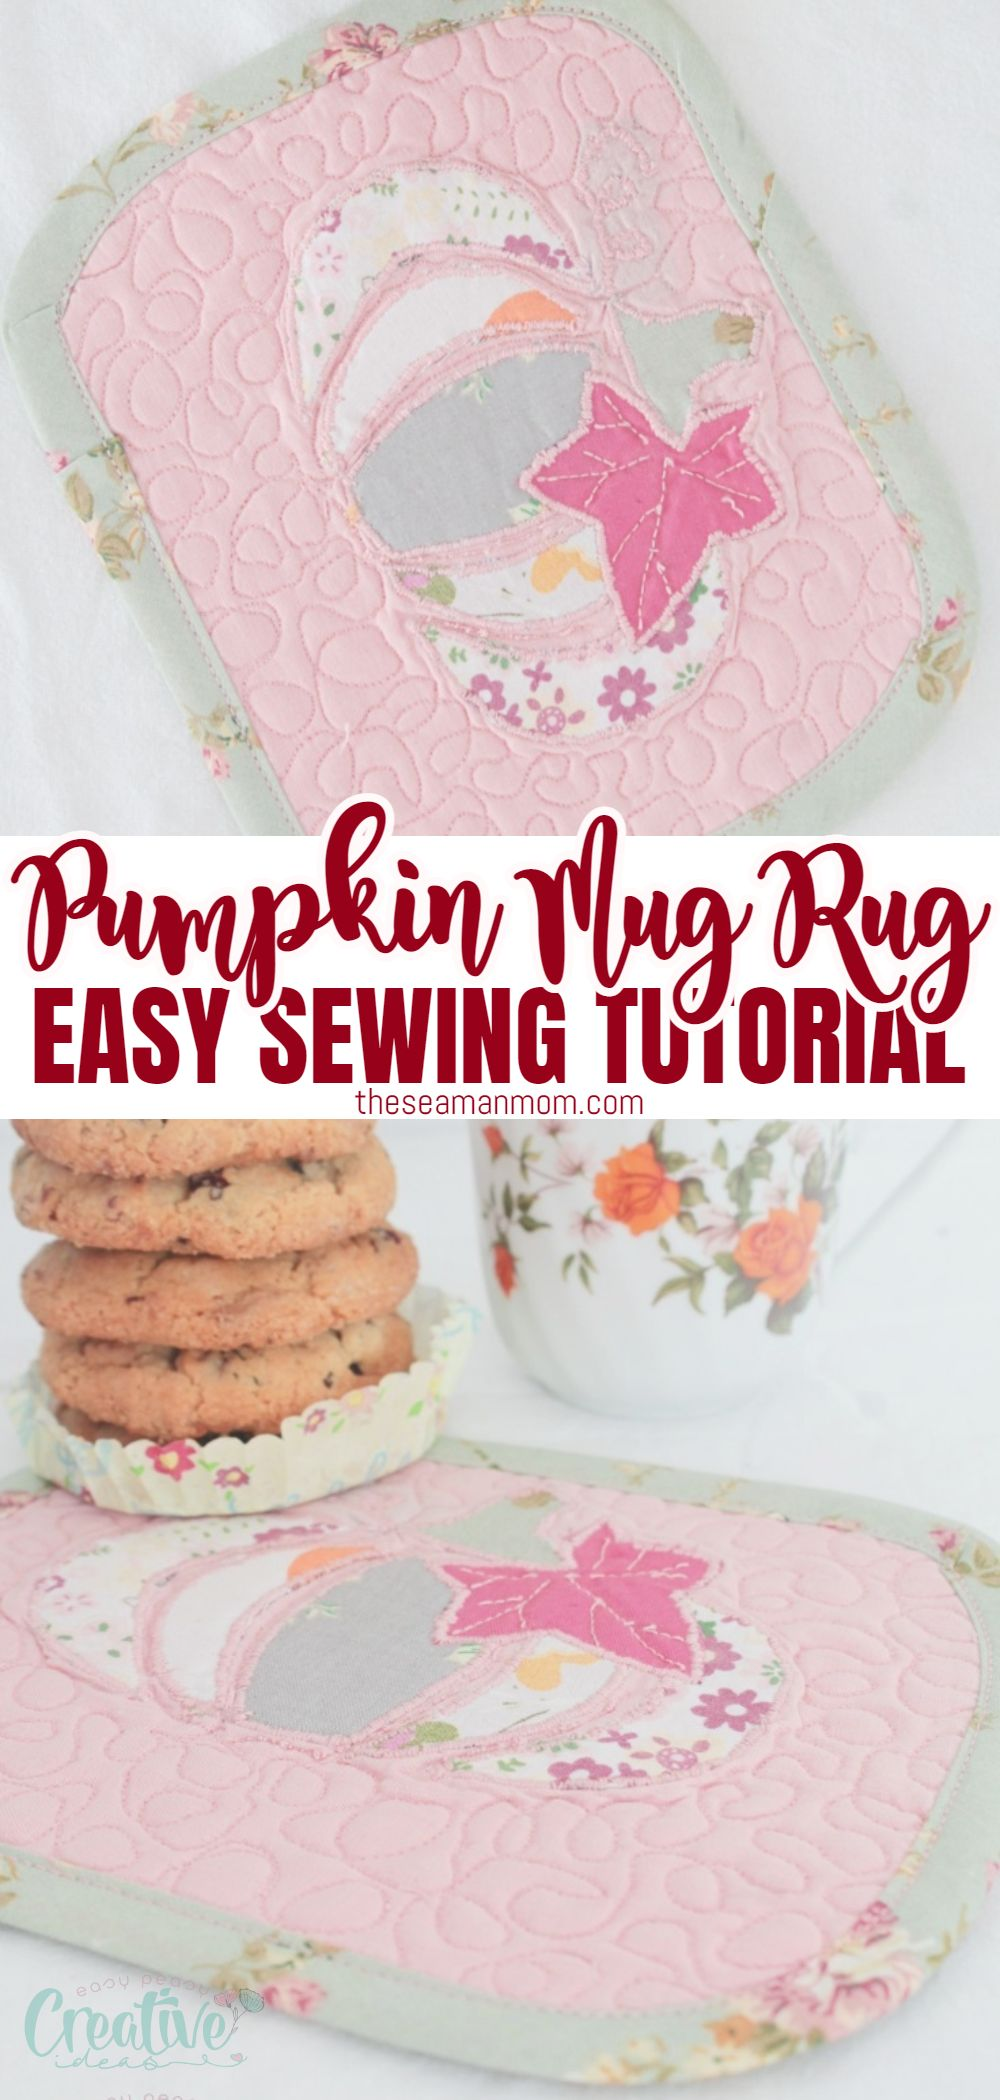 No need to go to the pumpkin patch to get yourself a cute gourd! Just sew a little pumpkin mug rug with this easy peasy tutorial for a quilted mug mat decorated with a pumpkin applique! via @petroneagu